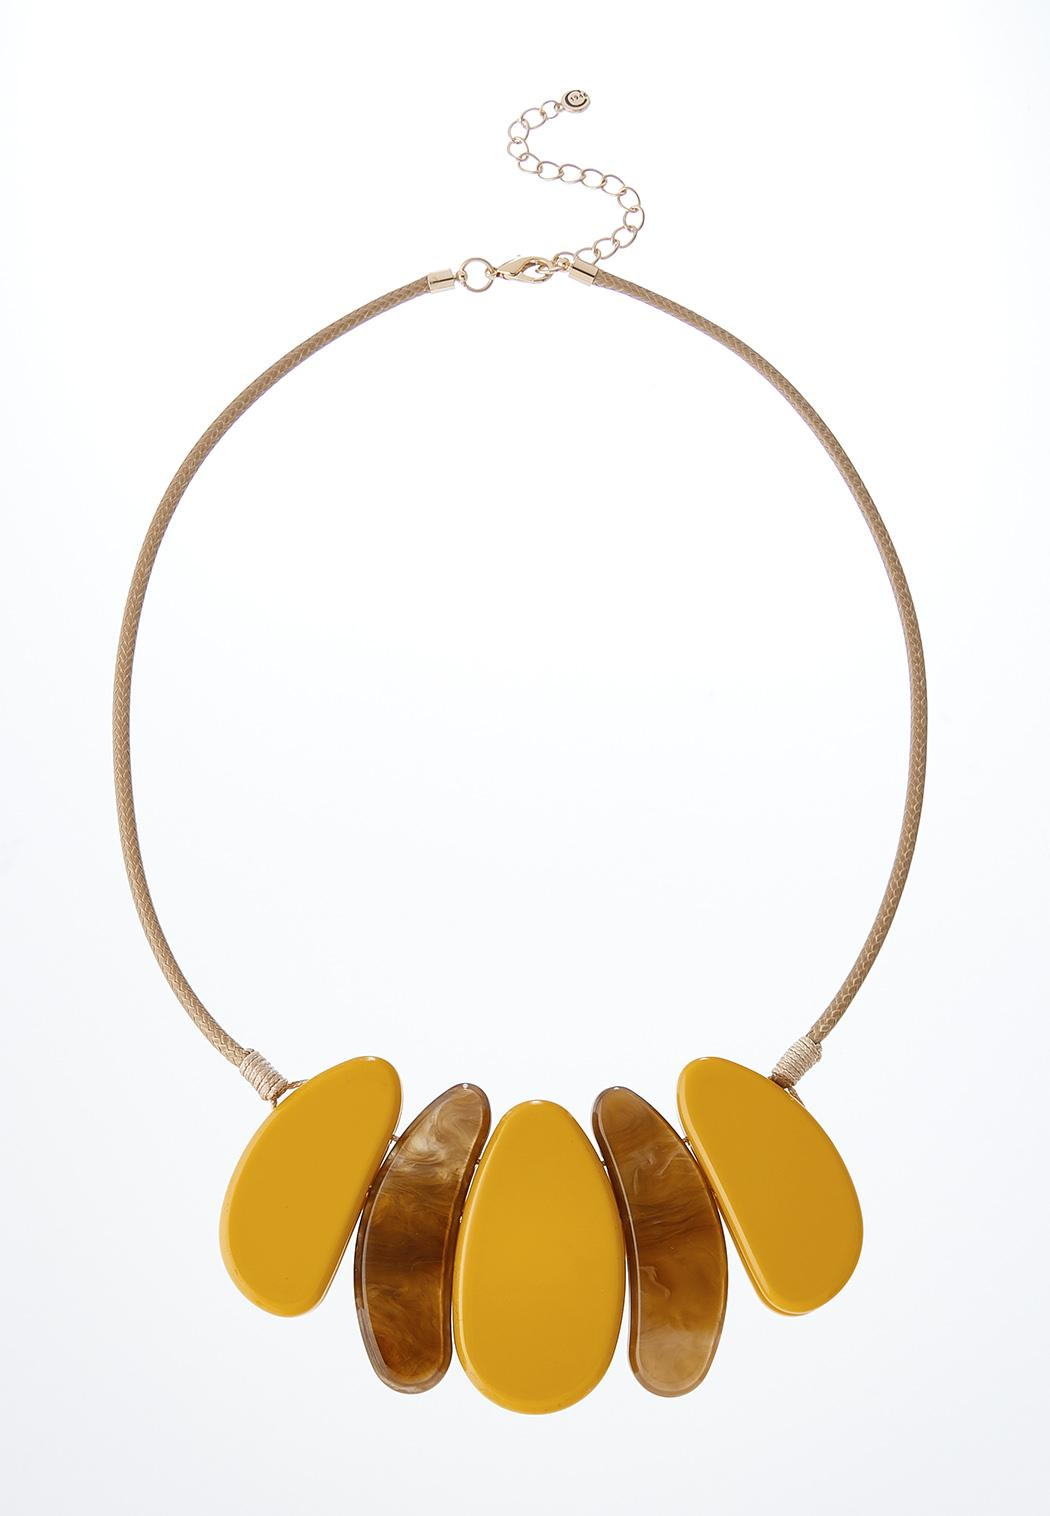 Modern Charm Roped Necklace